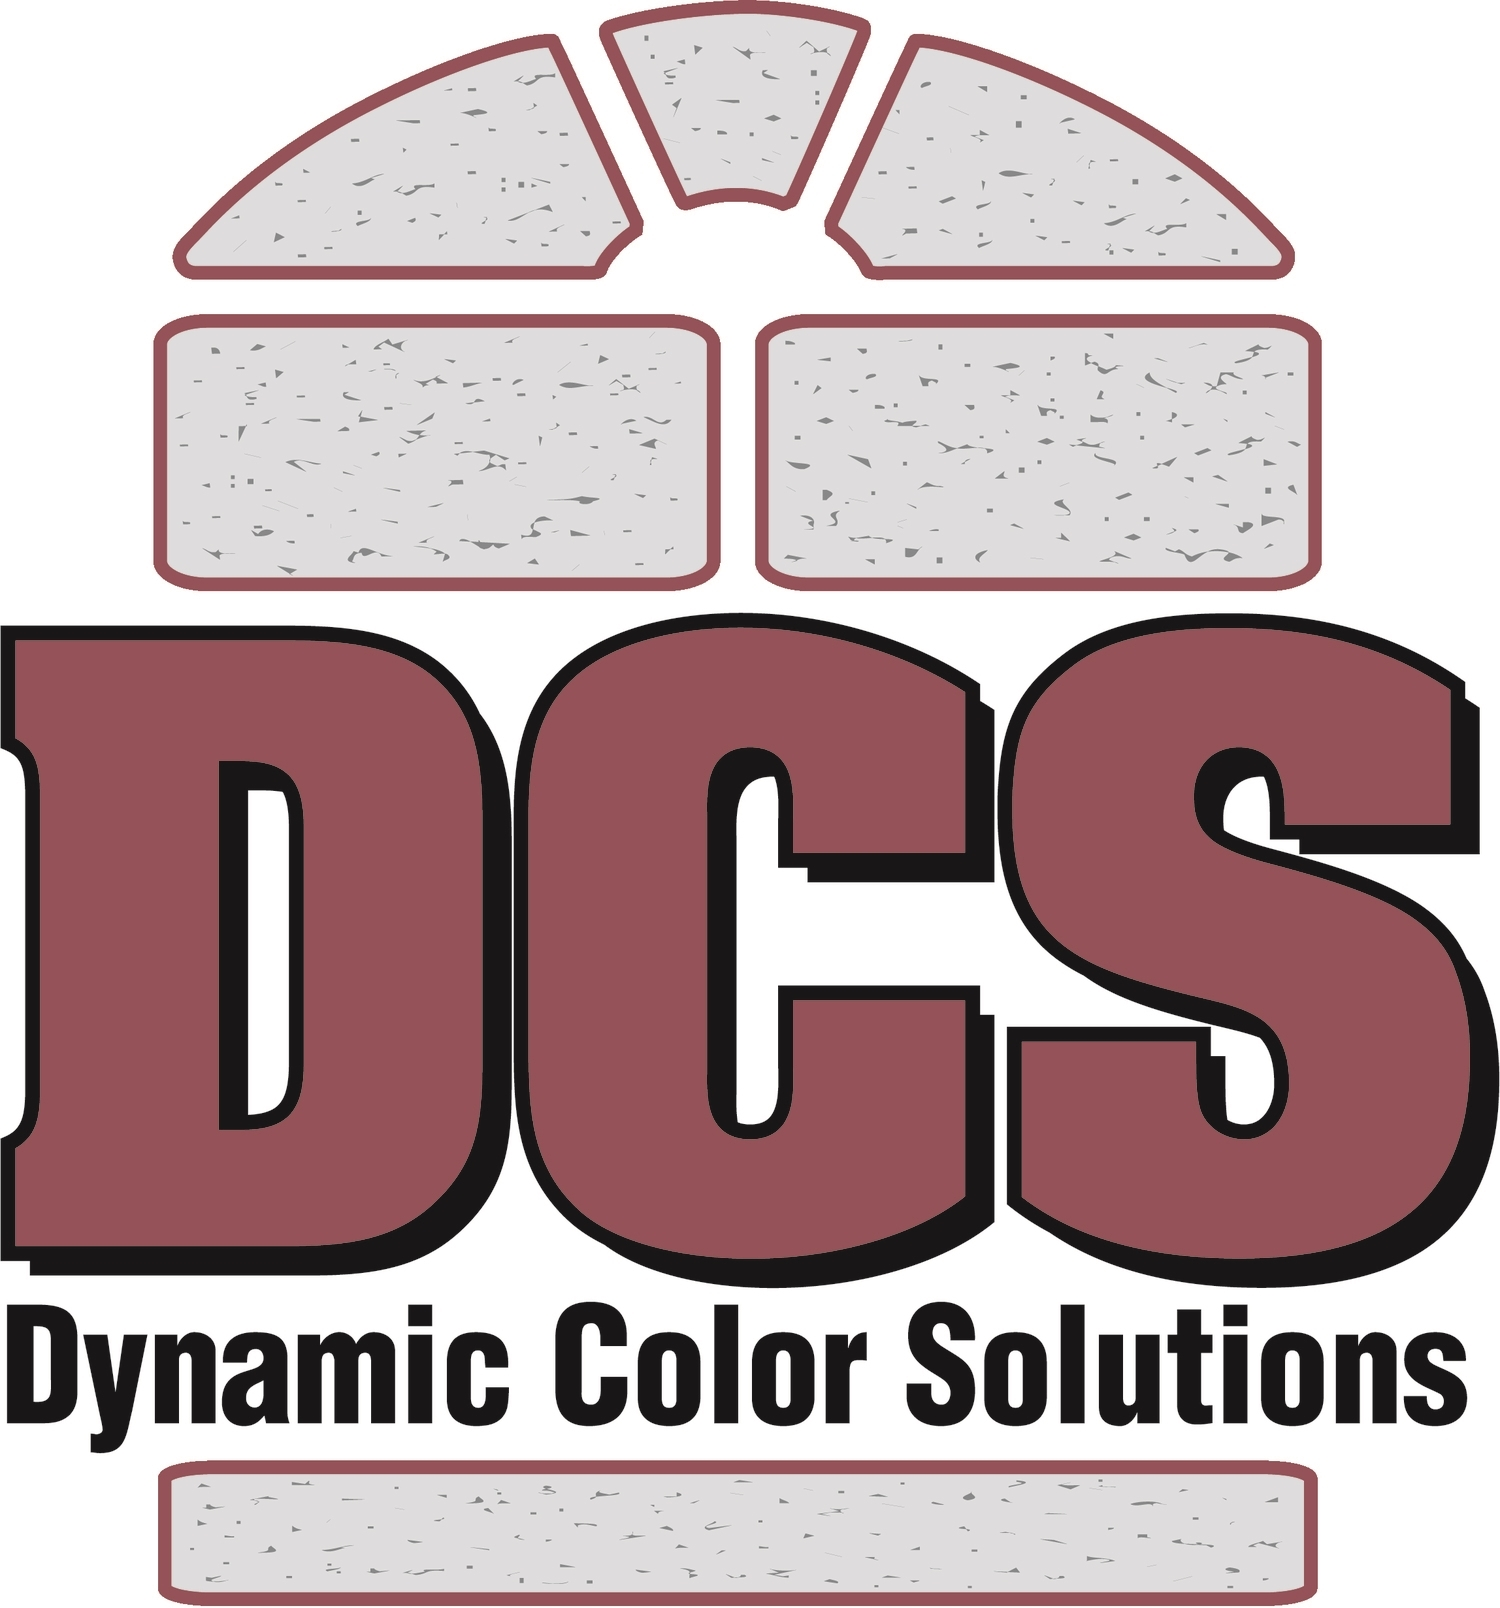 Dynamic Color Solutions